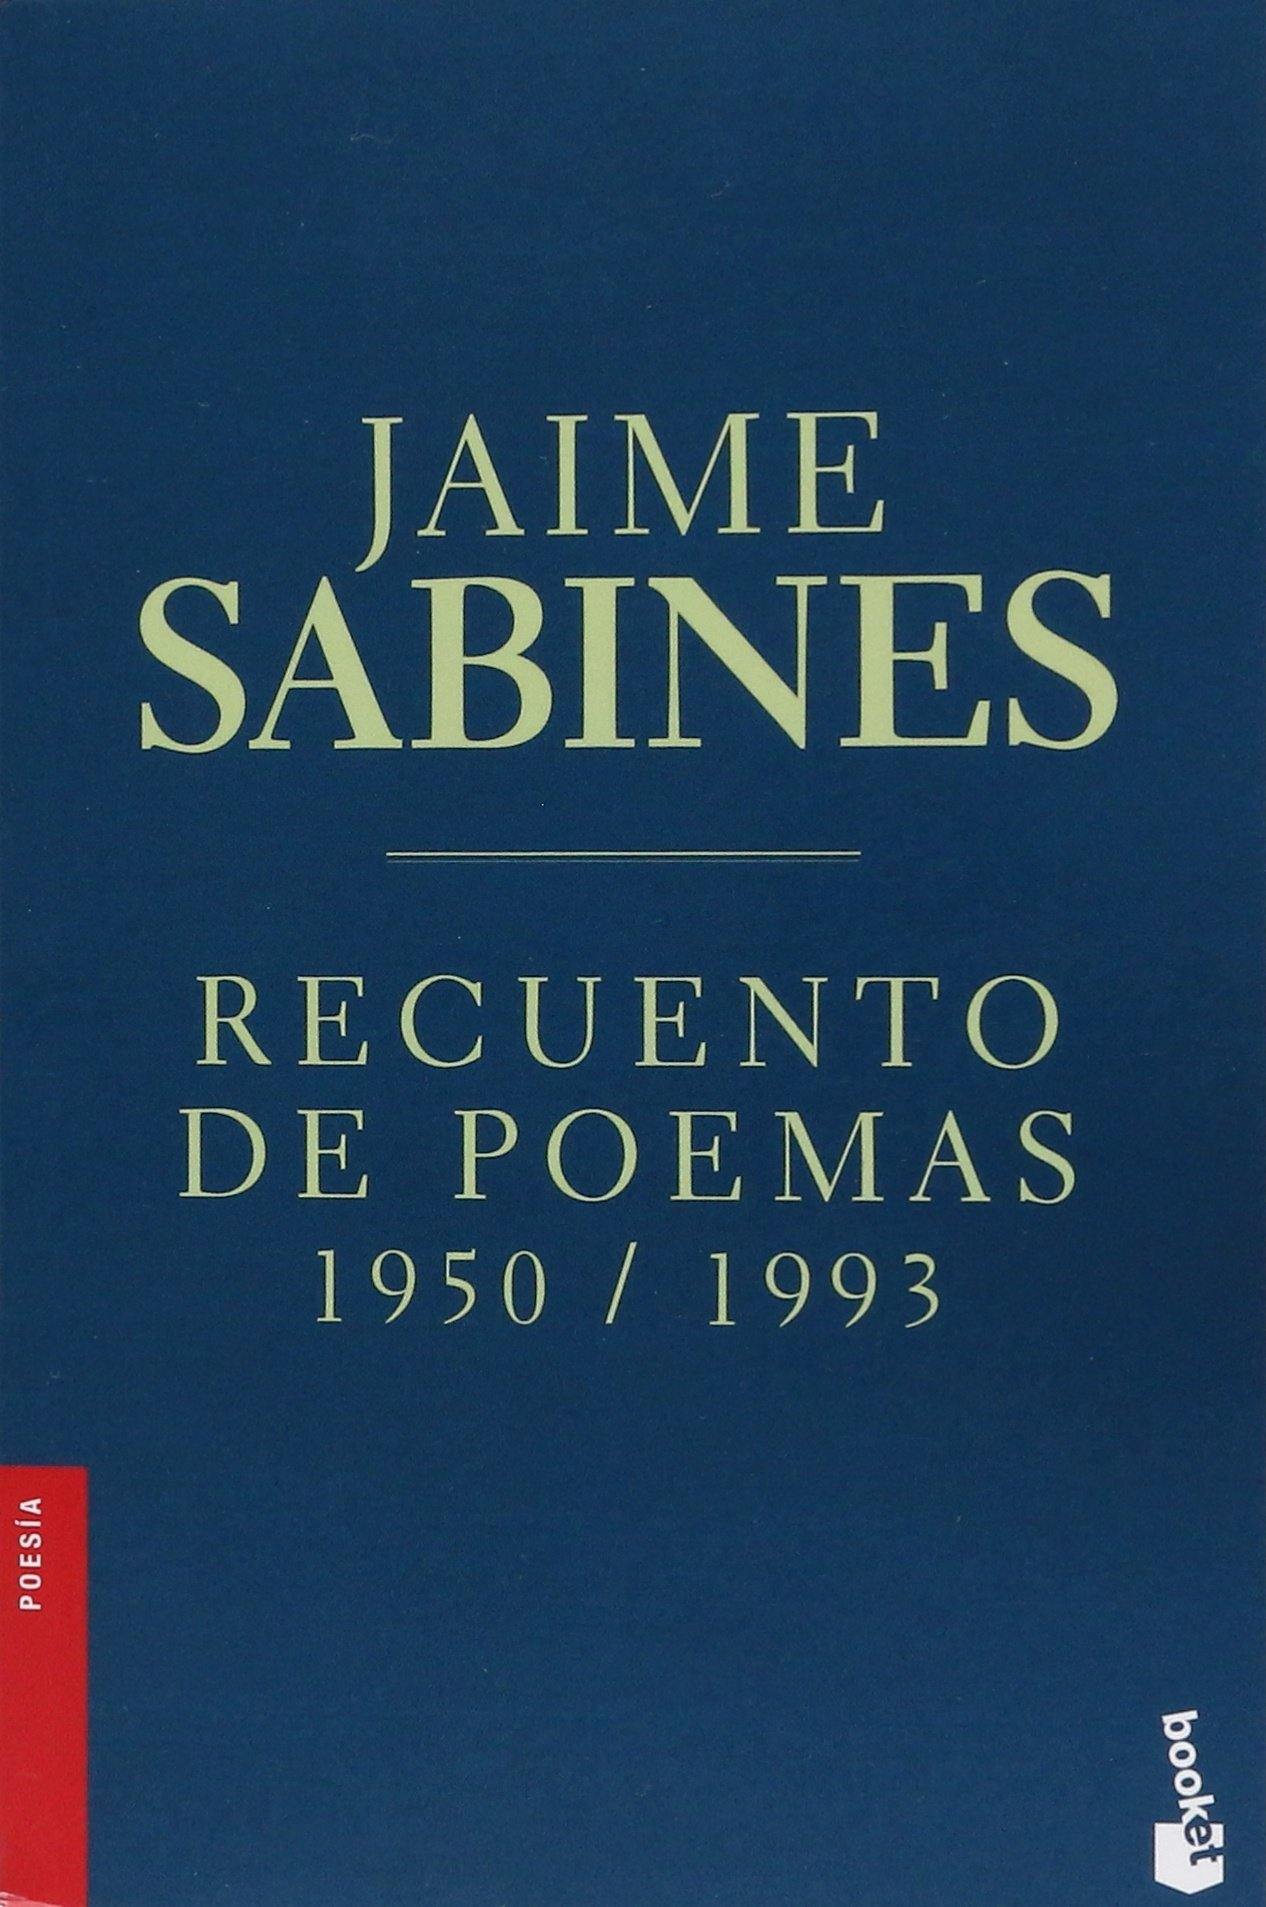 Recuento de poemas 1950-1993 (Spanish Edition): Jaime Sabines:  9786070736292: Amazon.com: Books